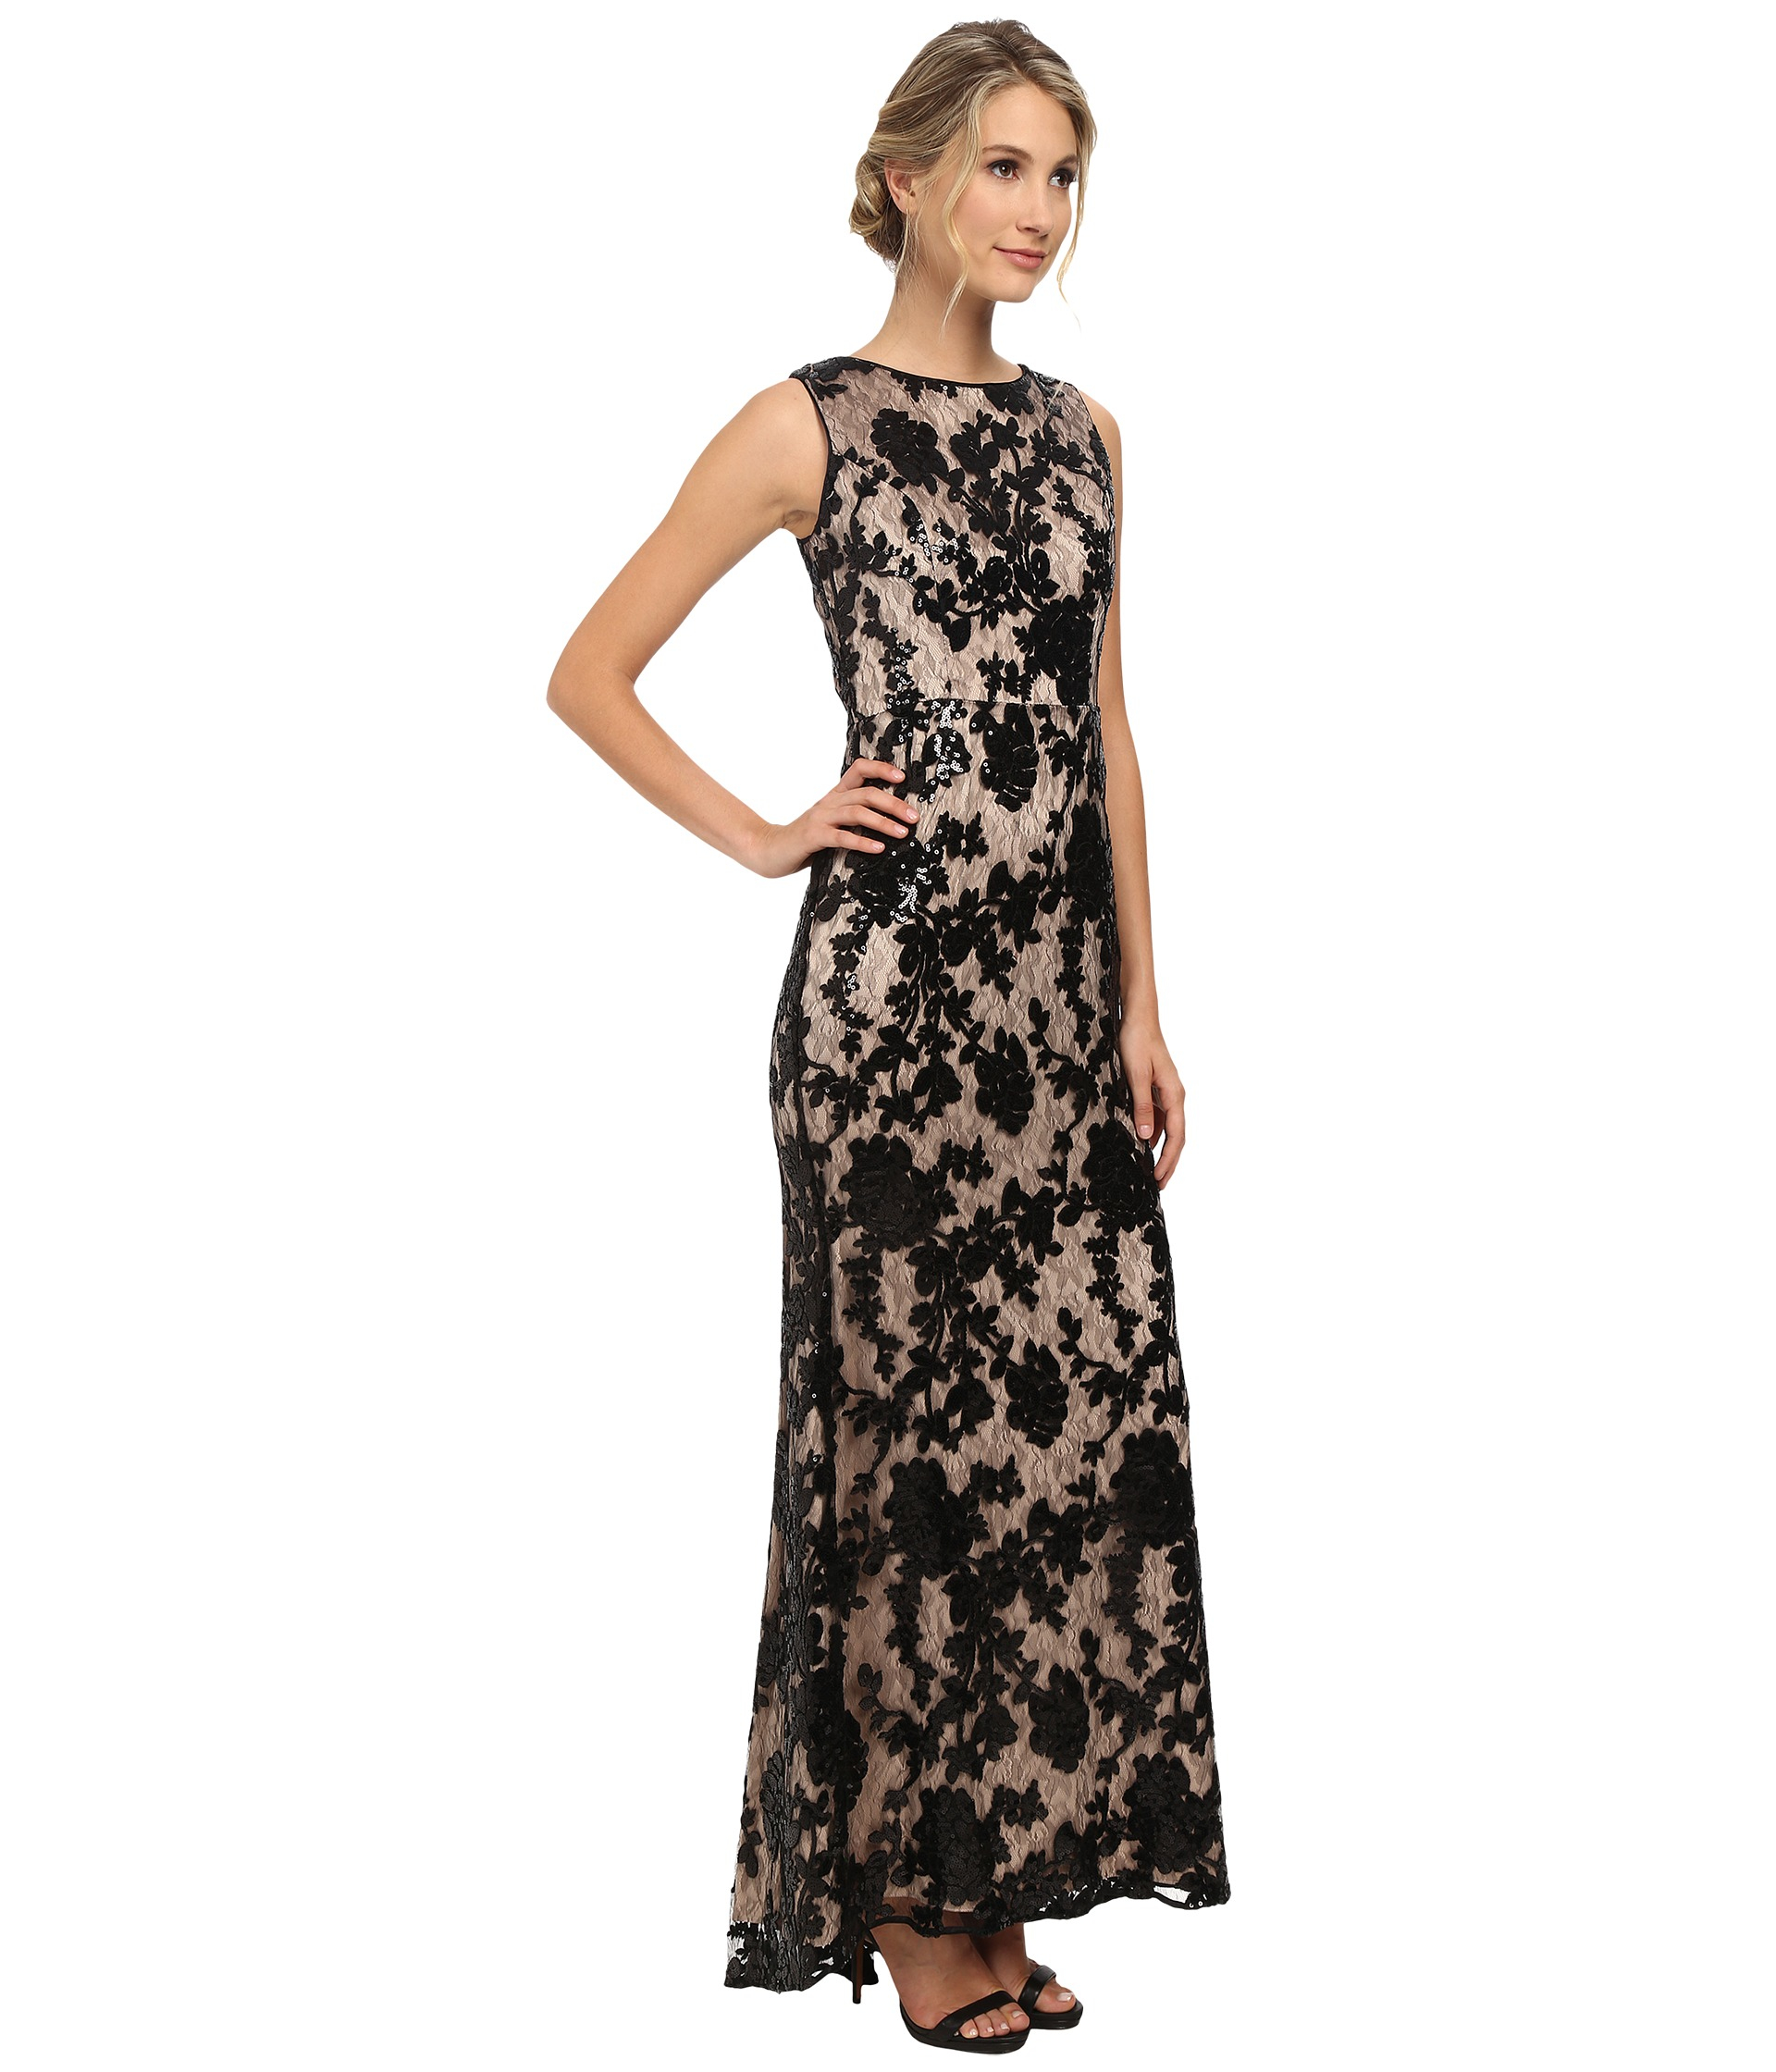 Lyst - Vince Camuto Sleeveless Sequin Gown in Black